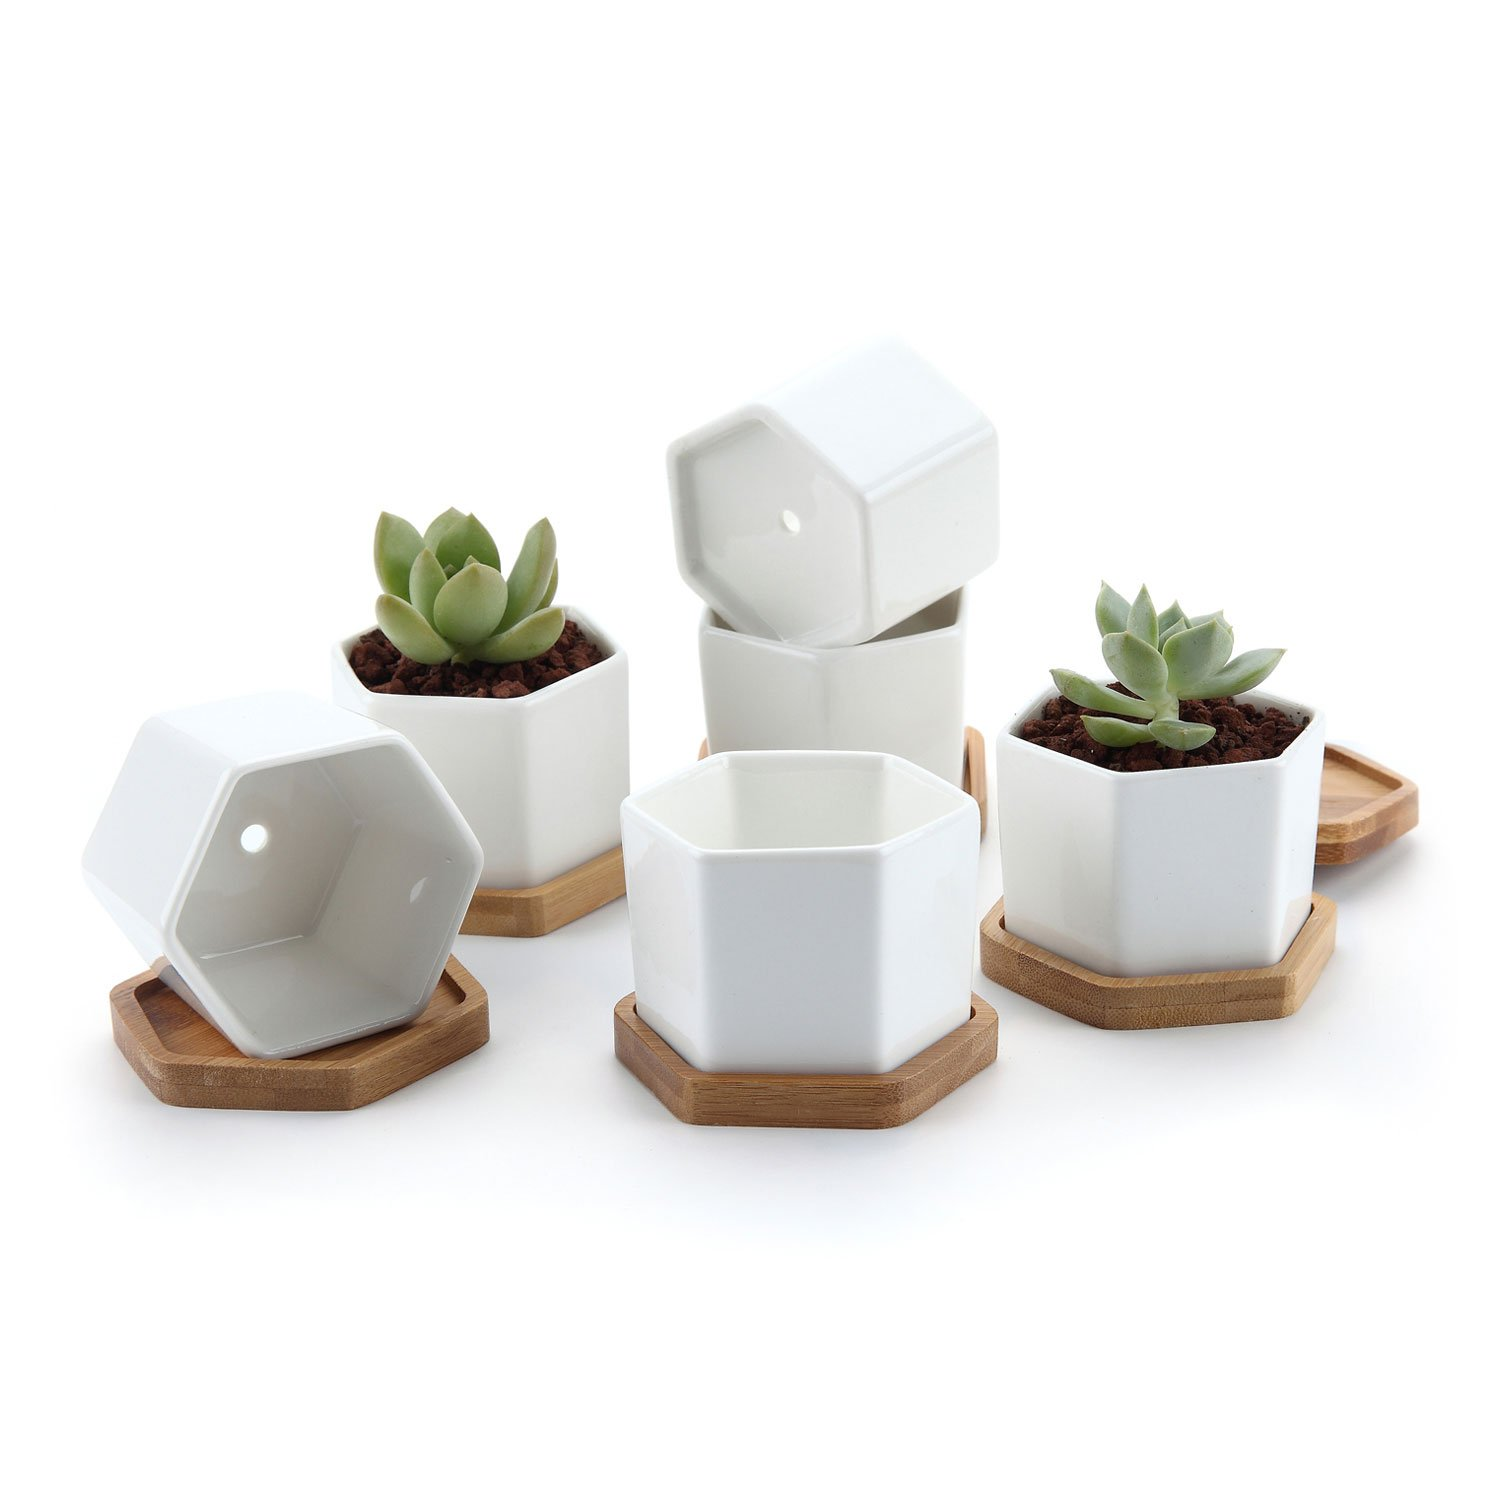 T4U 2.75'' White Ceramic Hexagon Succulent Cactus Planter Pots with FREE Bamboo Tray for Home Decoration 1 Pack of 6